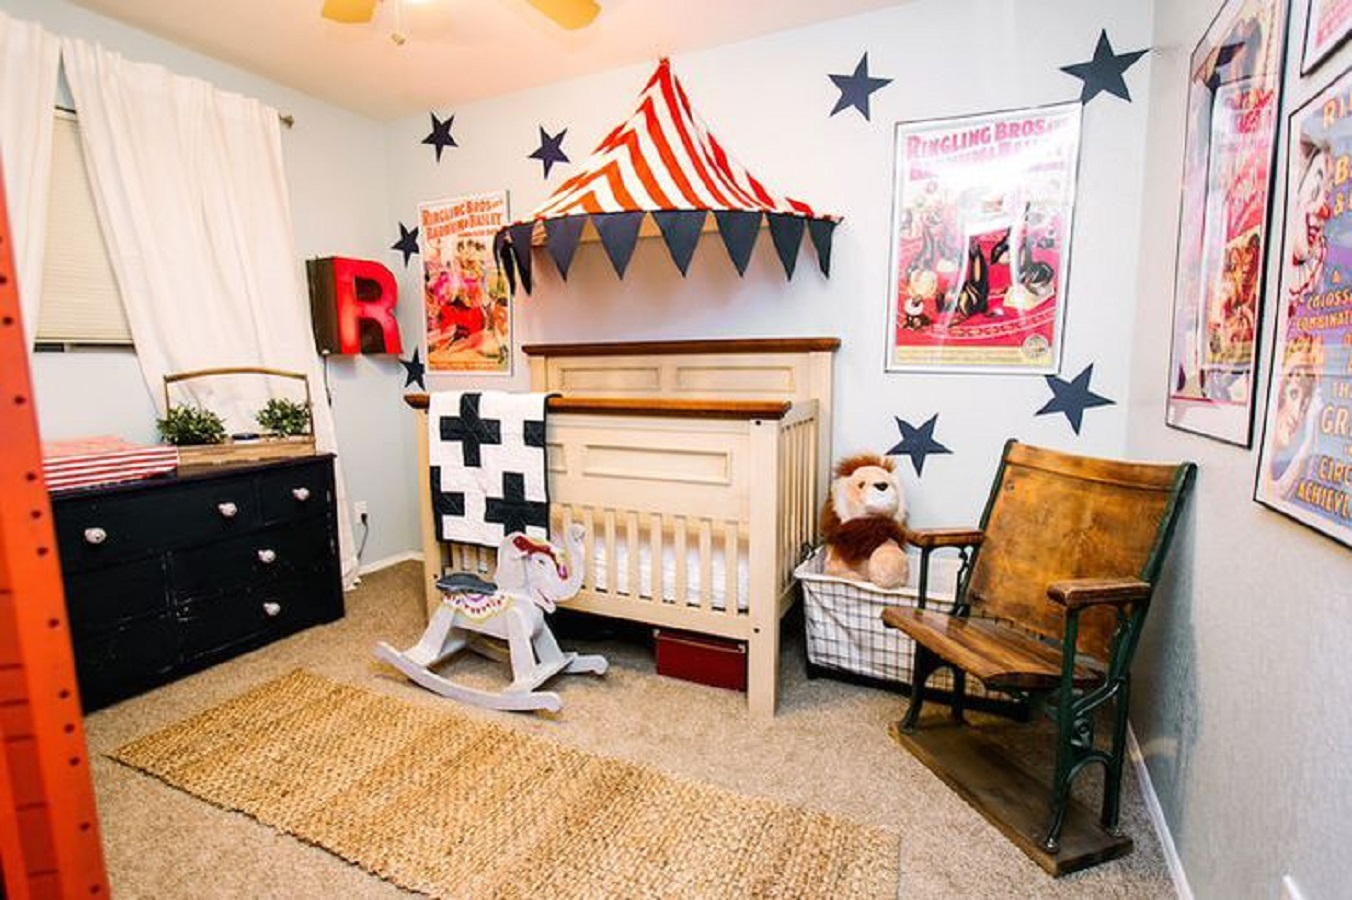 Interesting circus theme Unchangeable Animal-Themed Ideas To Present The Most Adorable Nursery Space